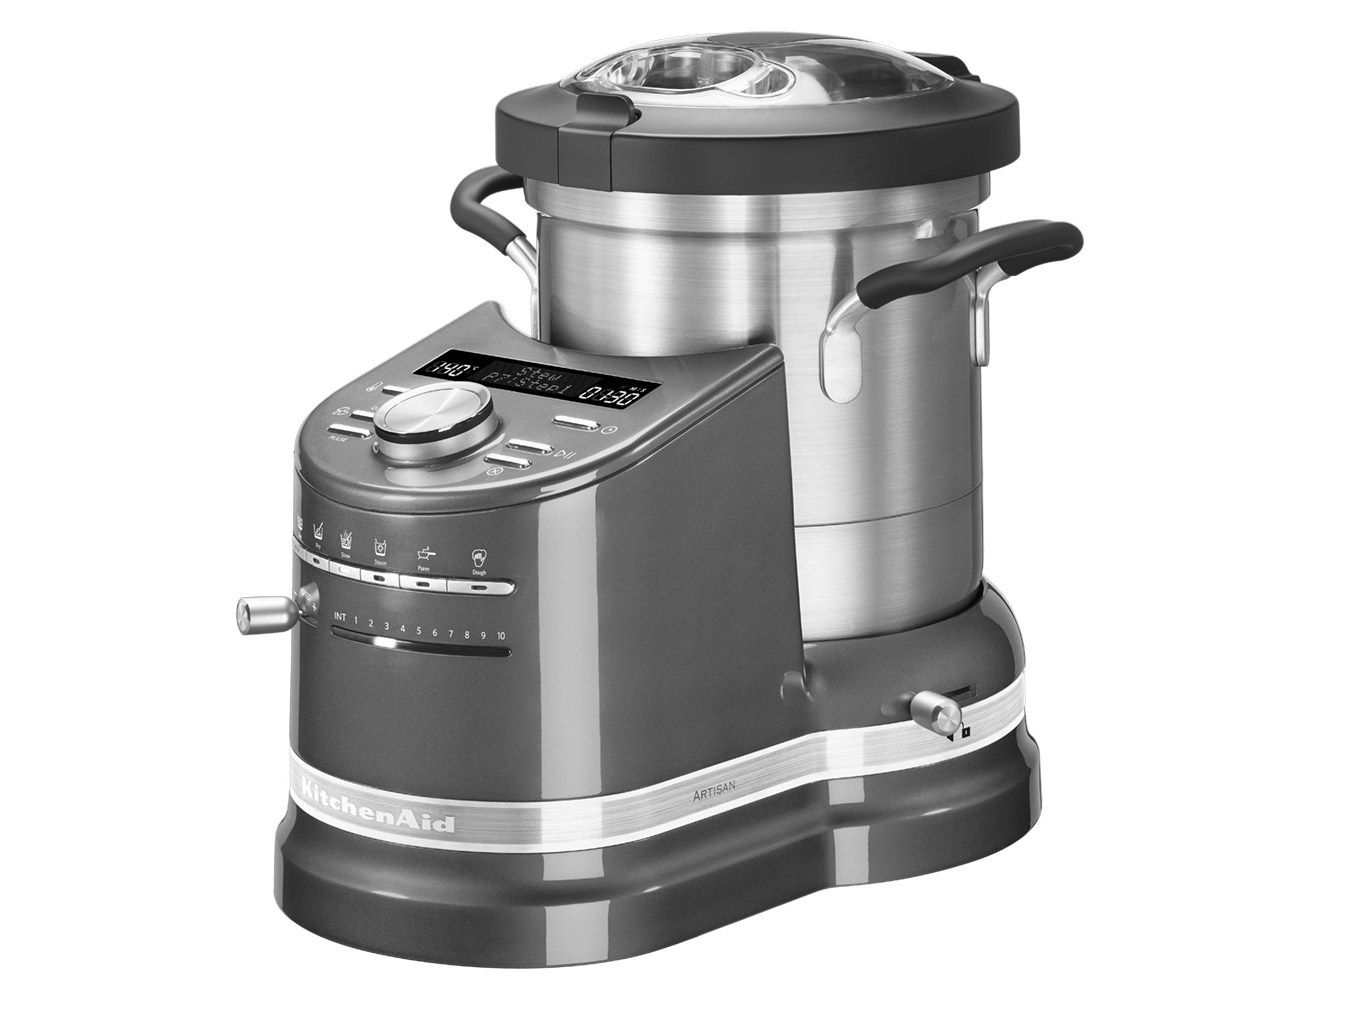 kitchenaid Cook Processor couleurs : bordeaux, crème, gris anthracite silver...